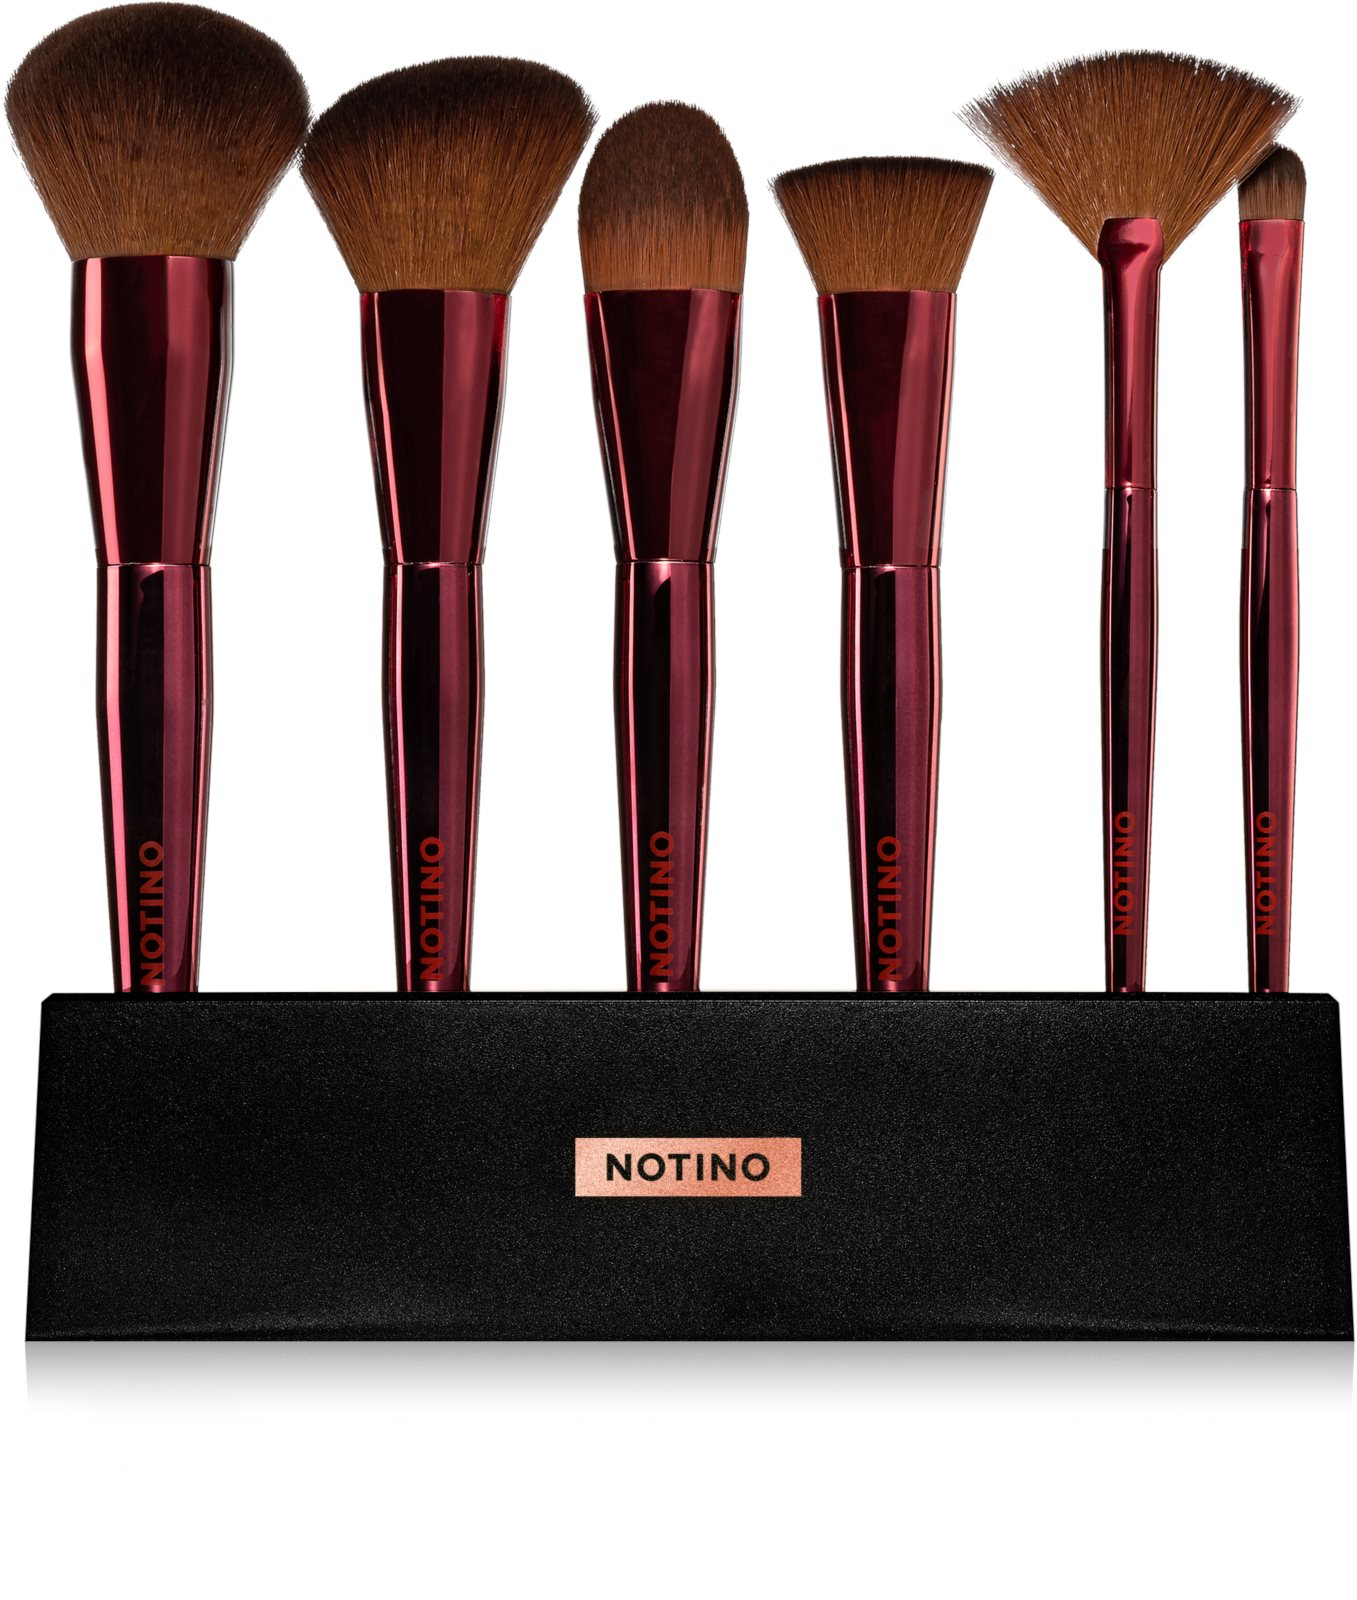 notino-elite-collection-the-perfect-brush-set-ecset-szett.jpg